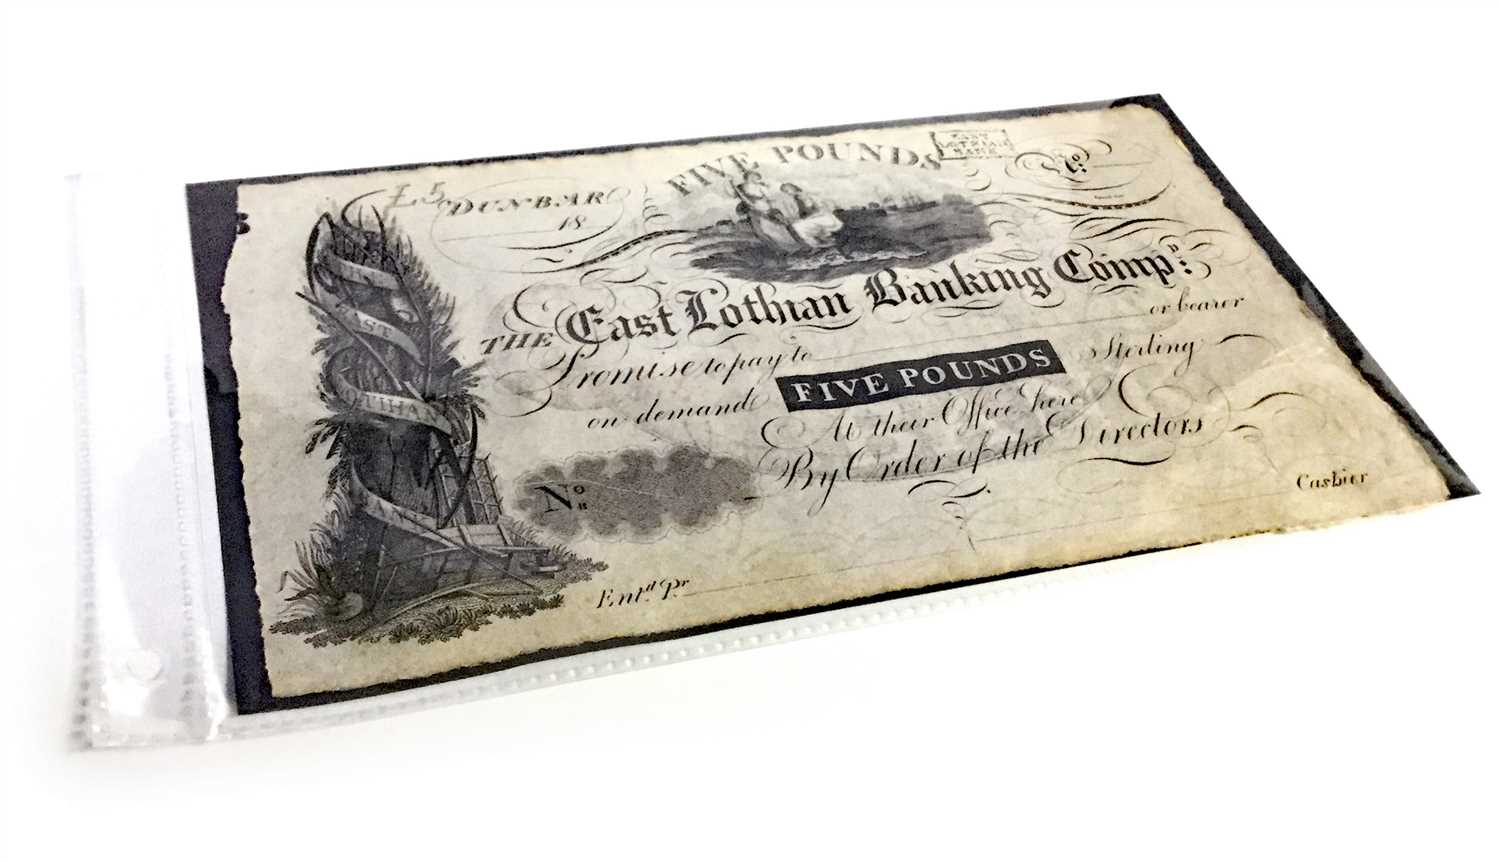 Lot 564-AN EAST LOTHIAN BANKING COMPANY £5 NOTE, UNDATED